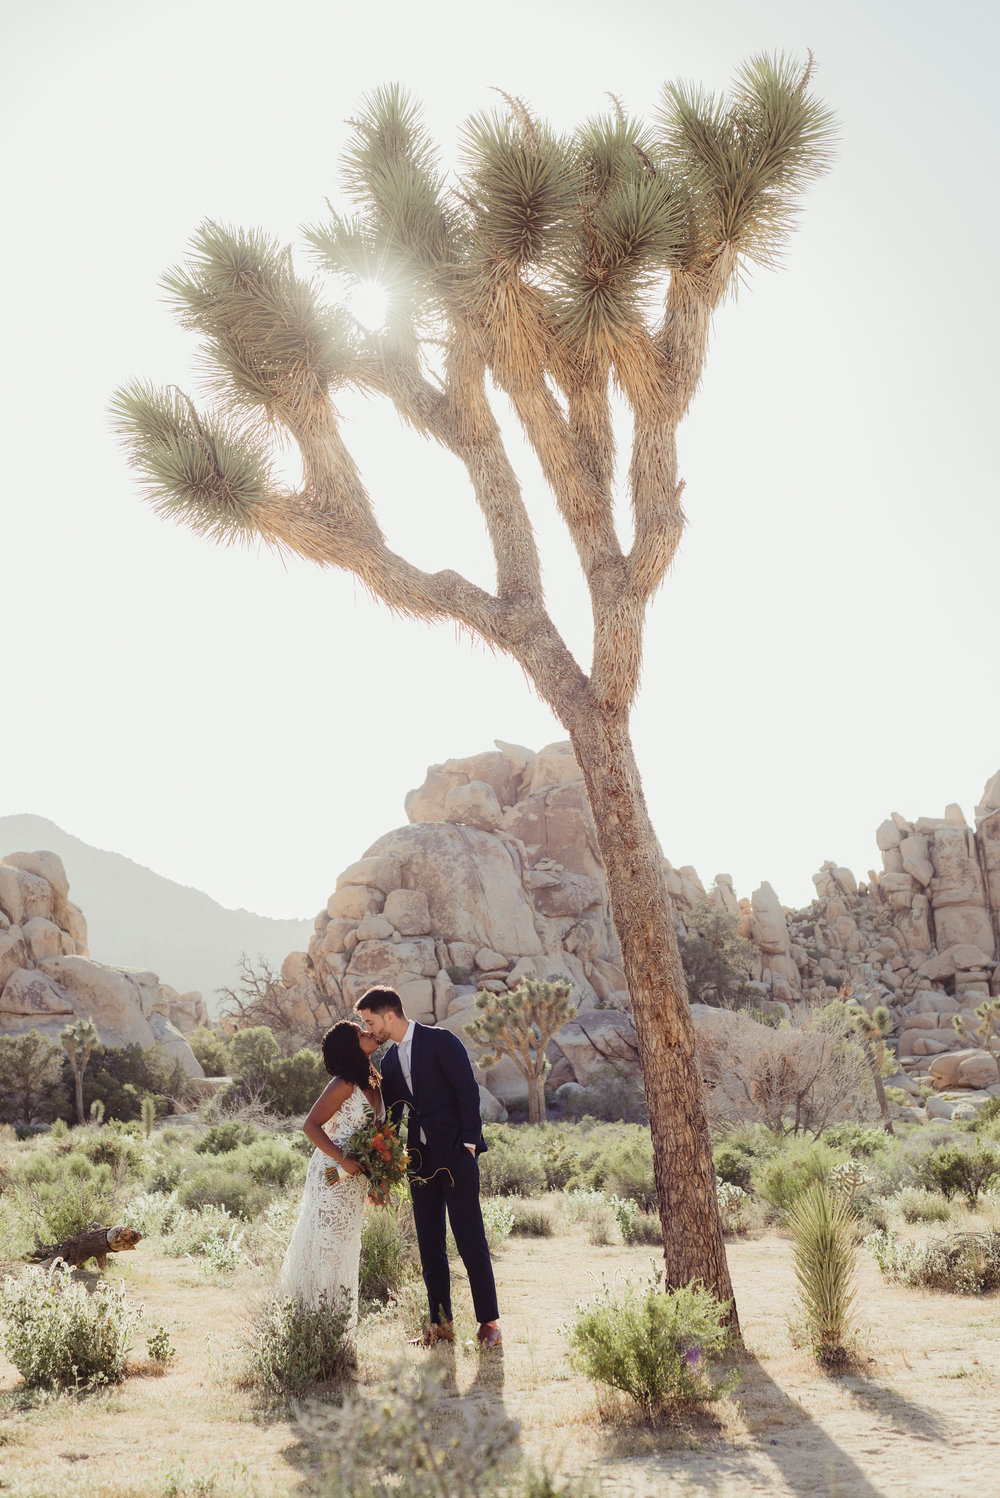 45-63-joshua-tree-ace-hotel-wedding-vivianchen-308.jpg